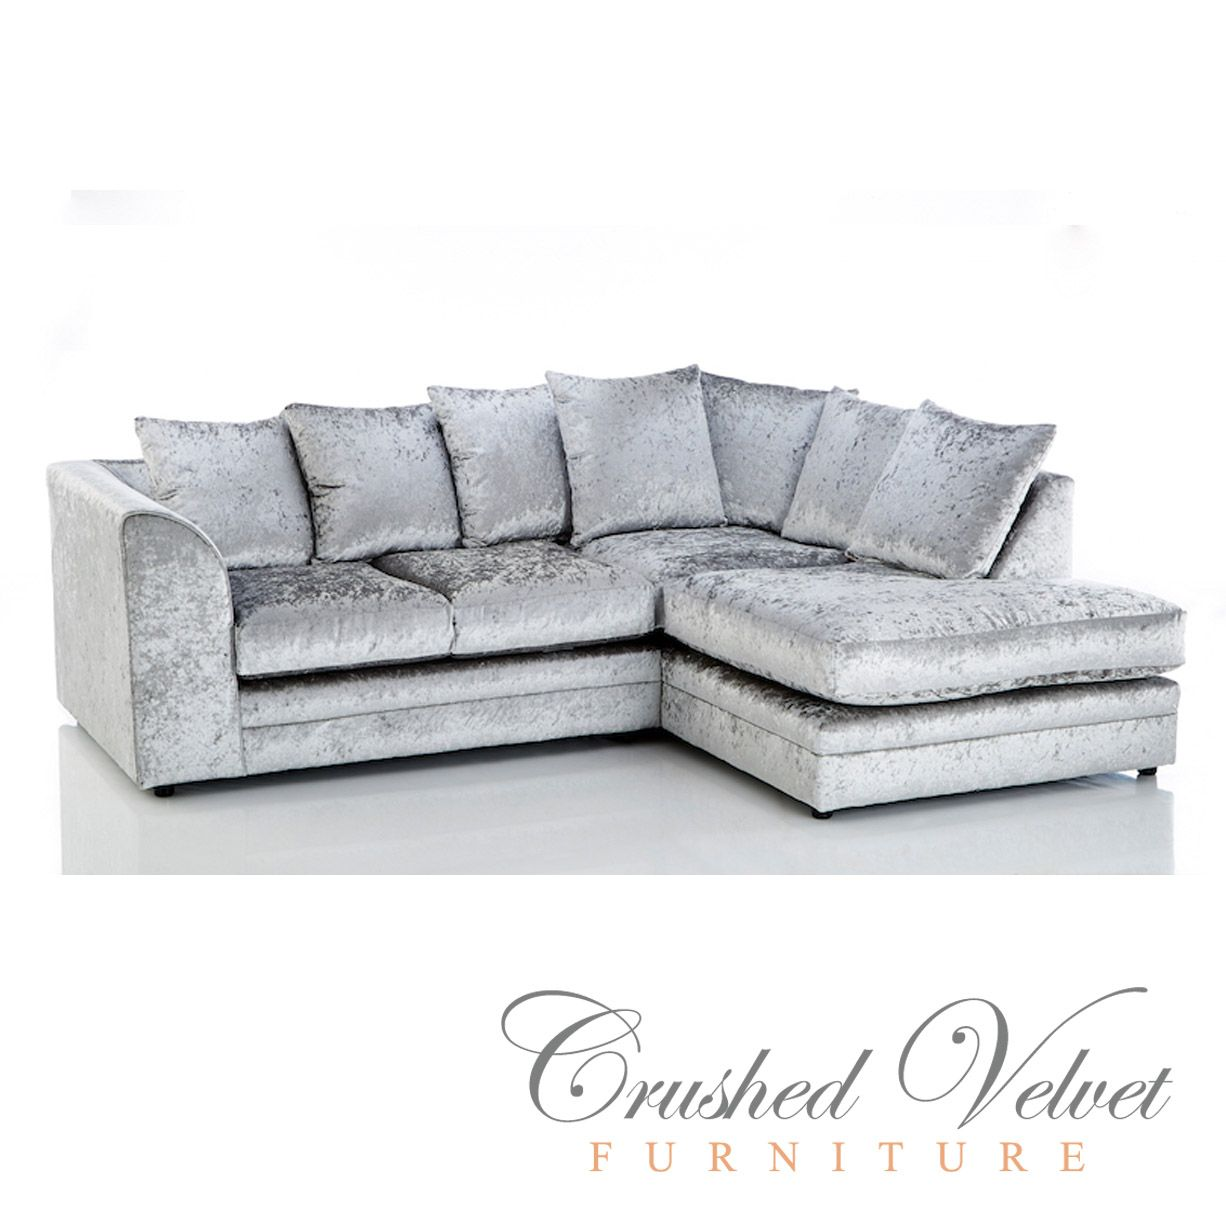 Grey Velvet Chair Crushed Sofa Silver Furniture Sofas Beds Chairs Cushions